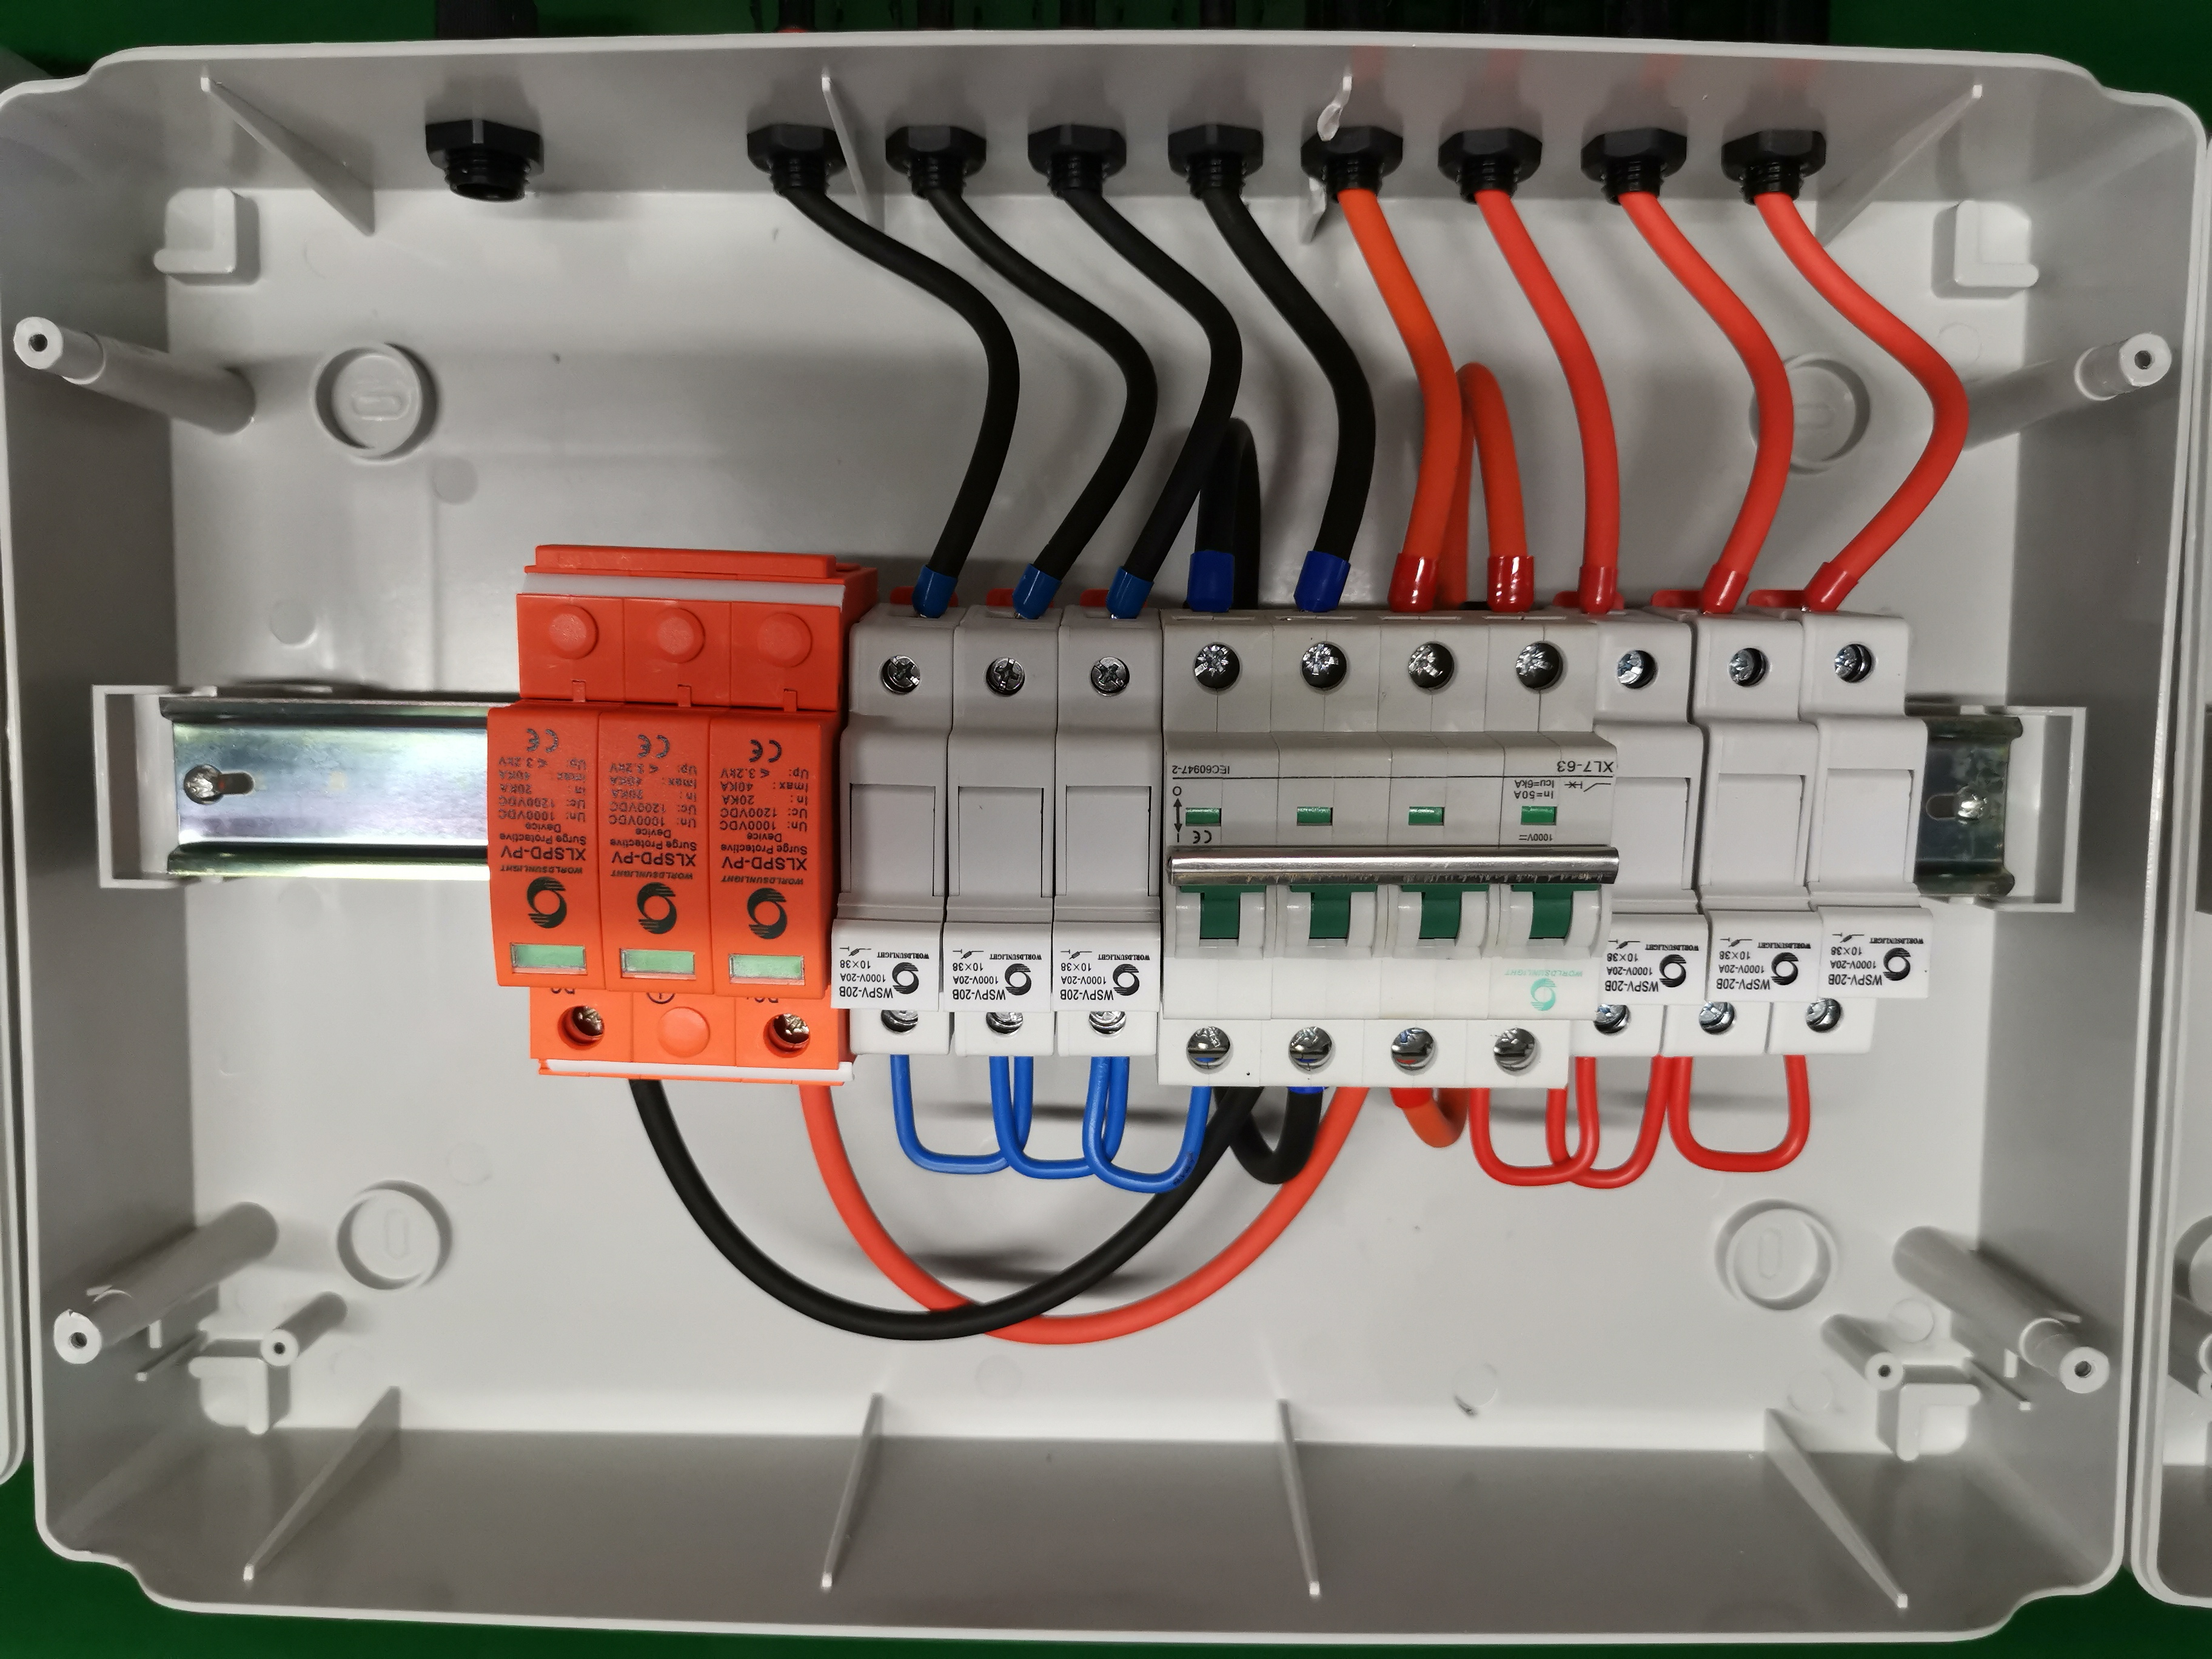 Solar Combiner Box with Circuit Breakers 20A Breakers 2-String PV Combiner